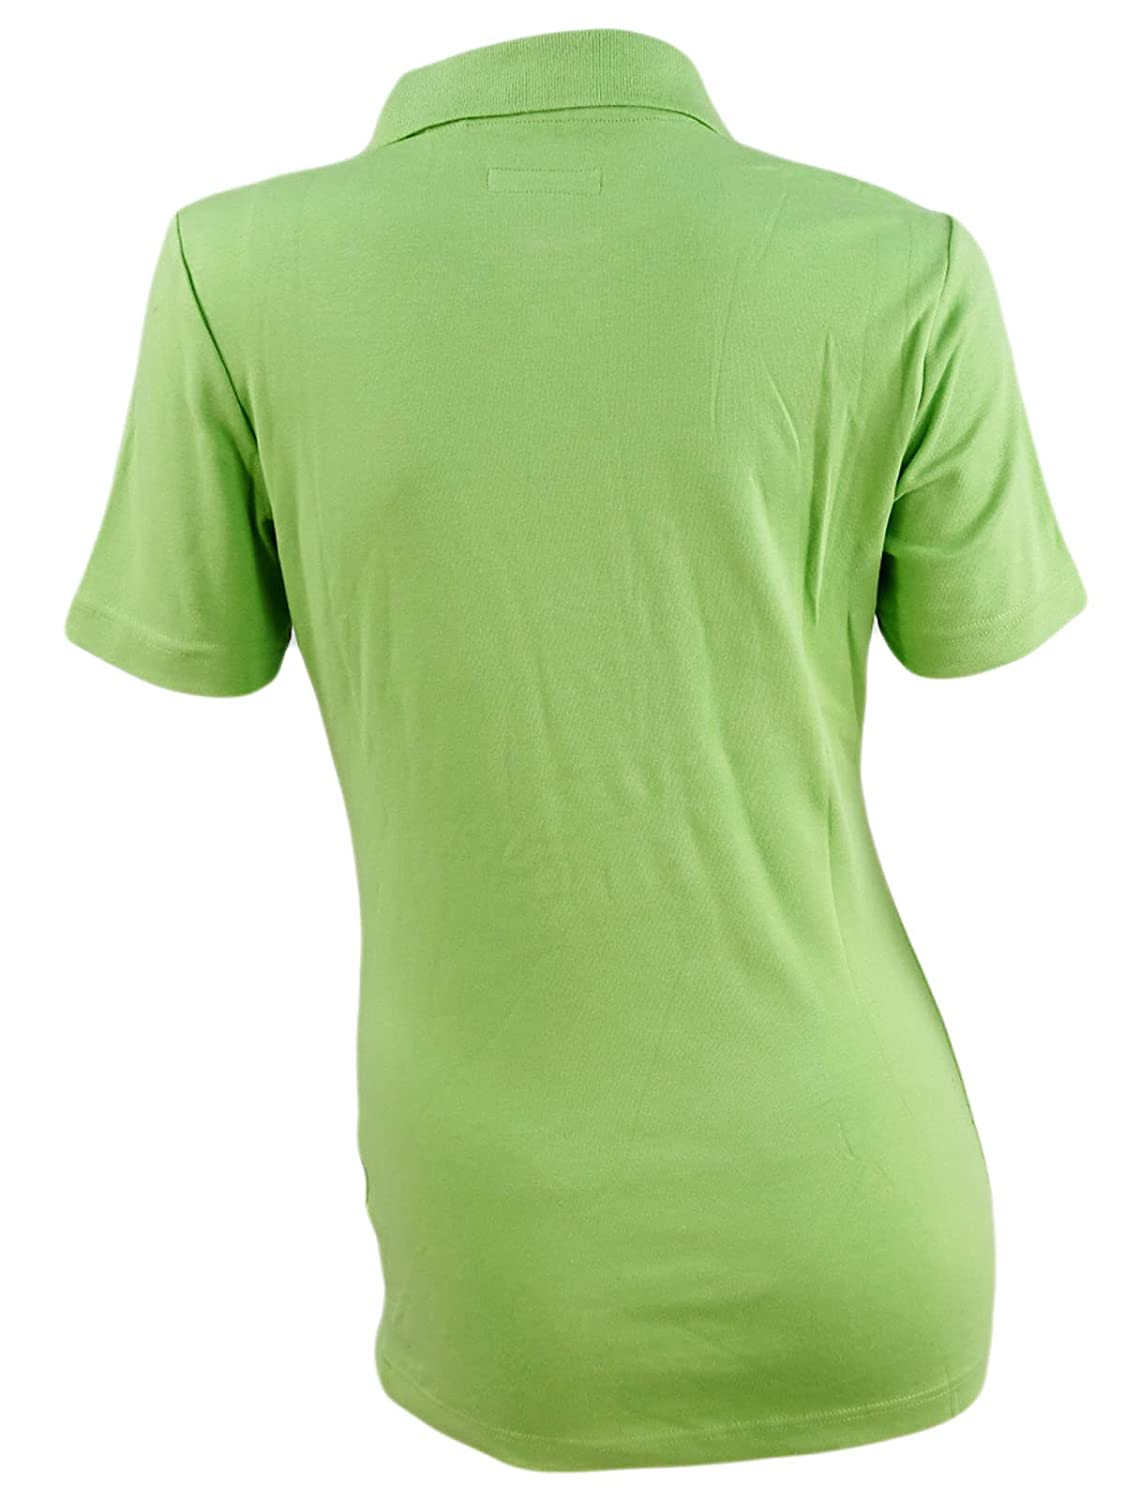 Lady Hathaway Polo Shirt Green S At Amazon Womens Clothing Store